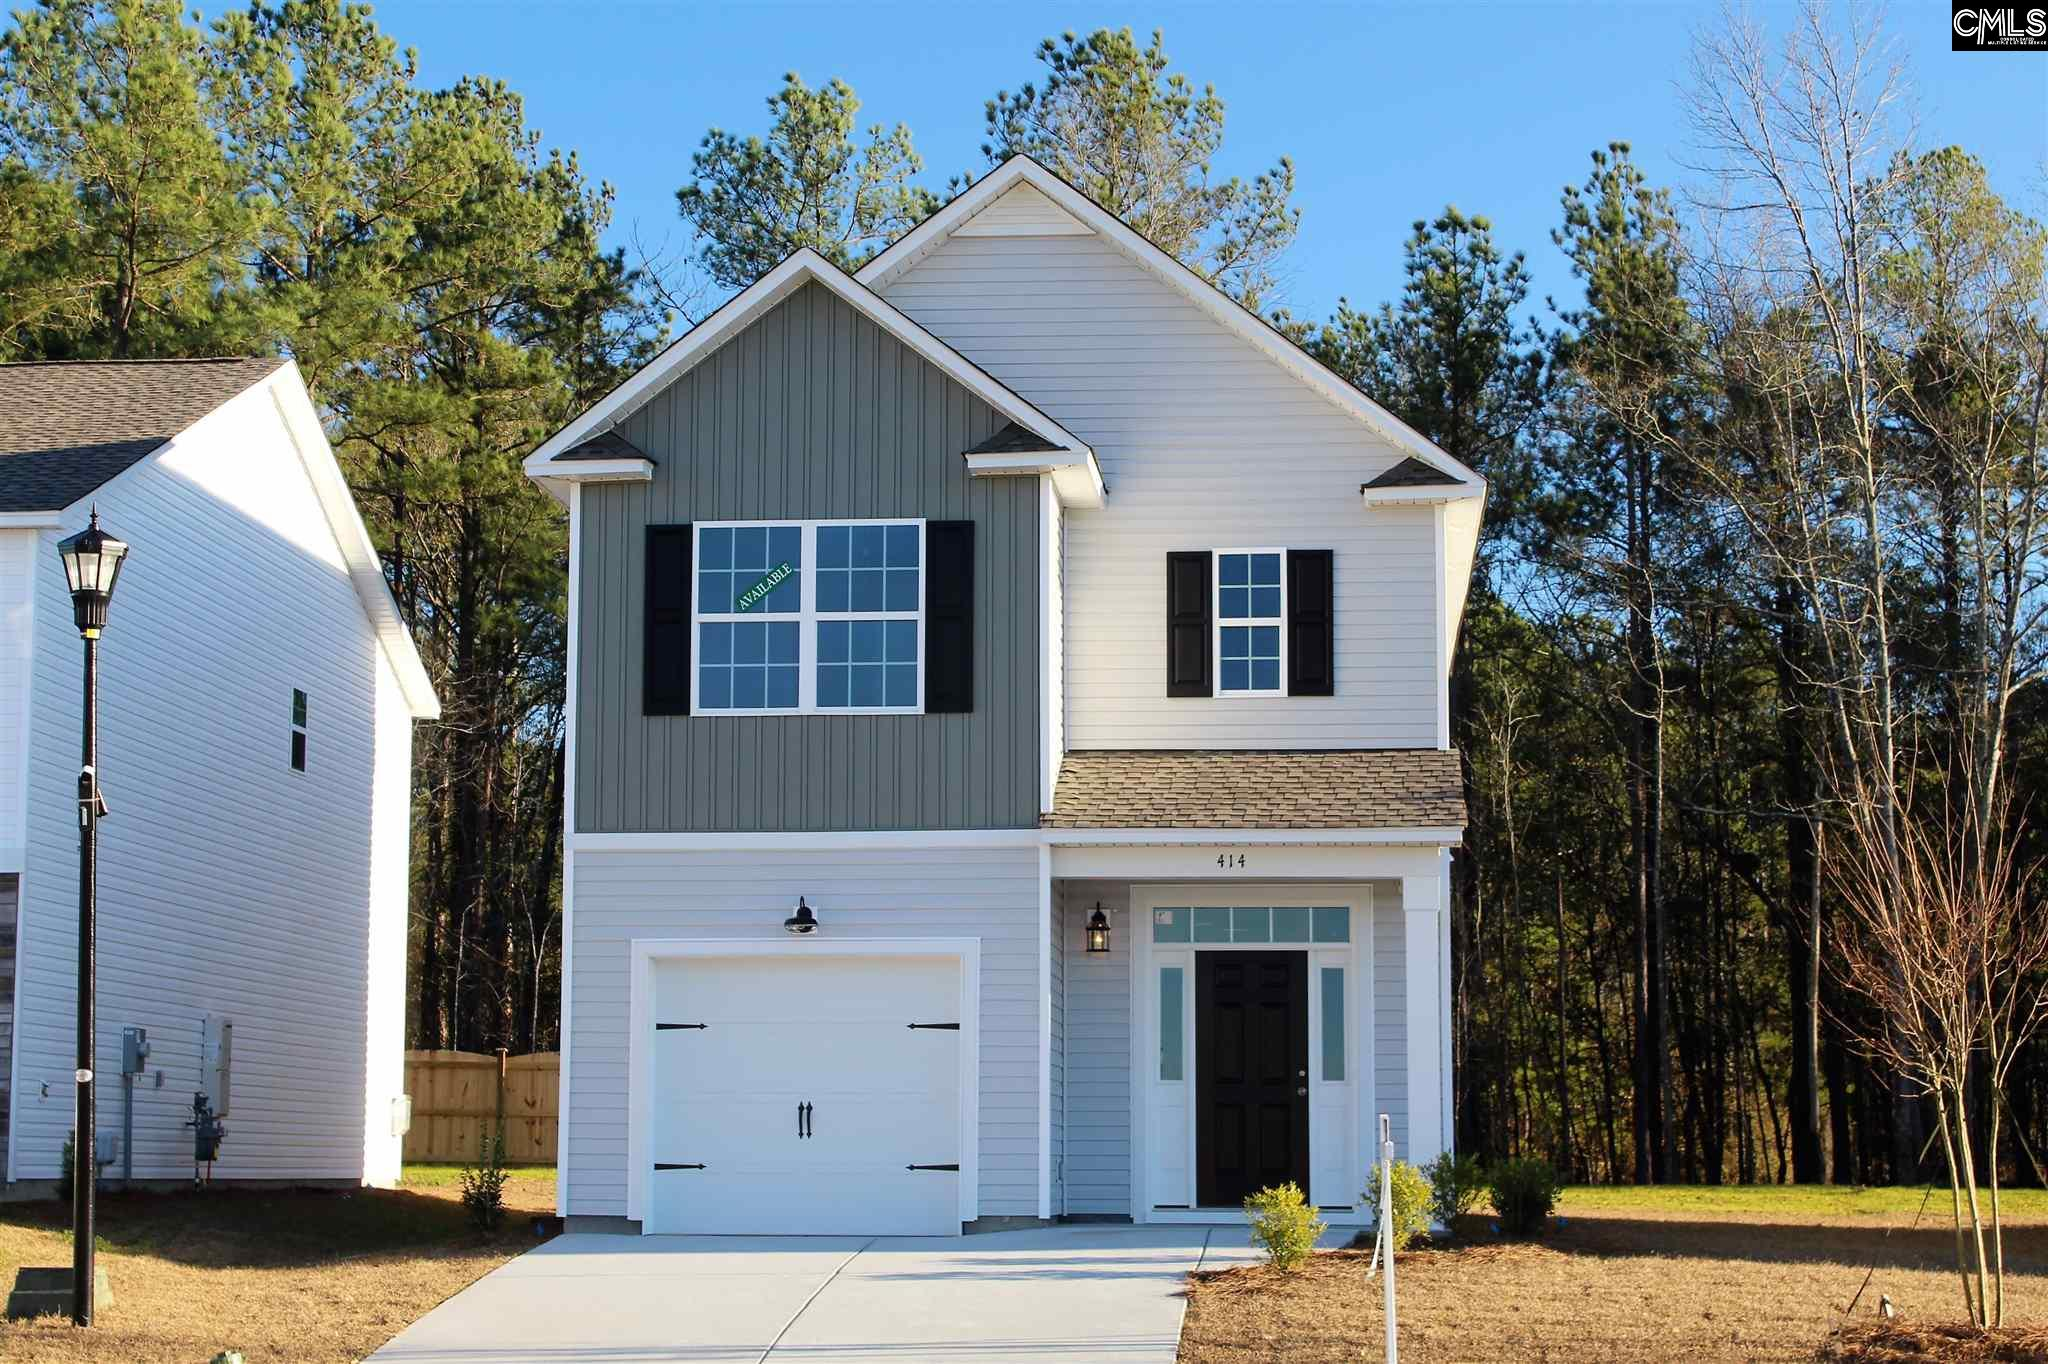 414 Fairford #73 Blythewood, SC 29016